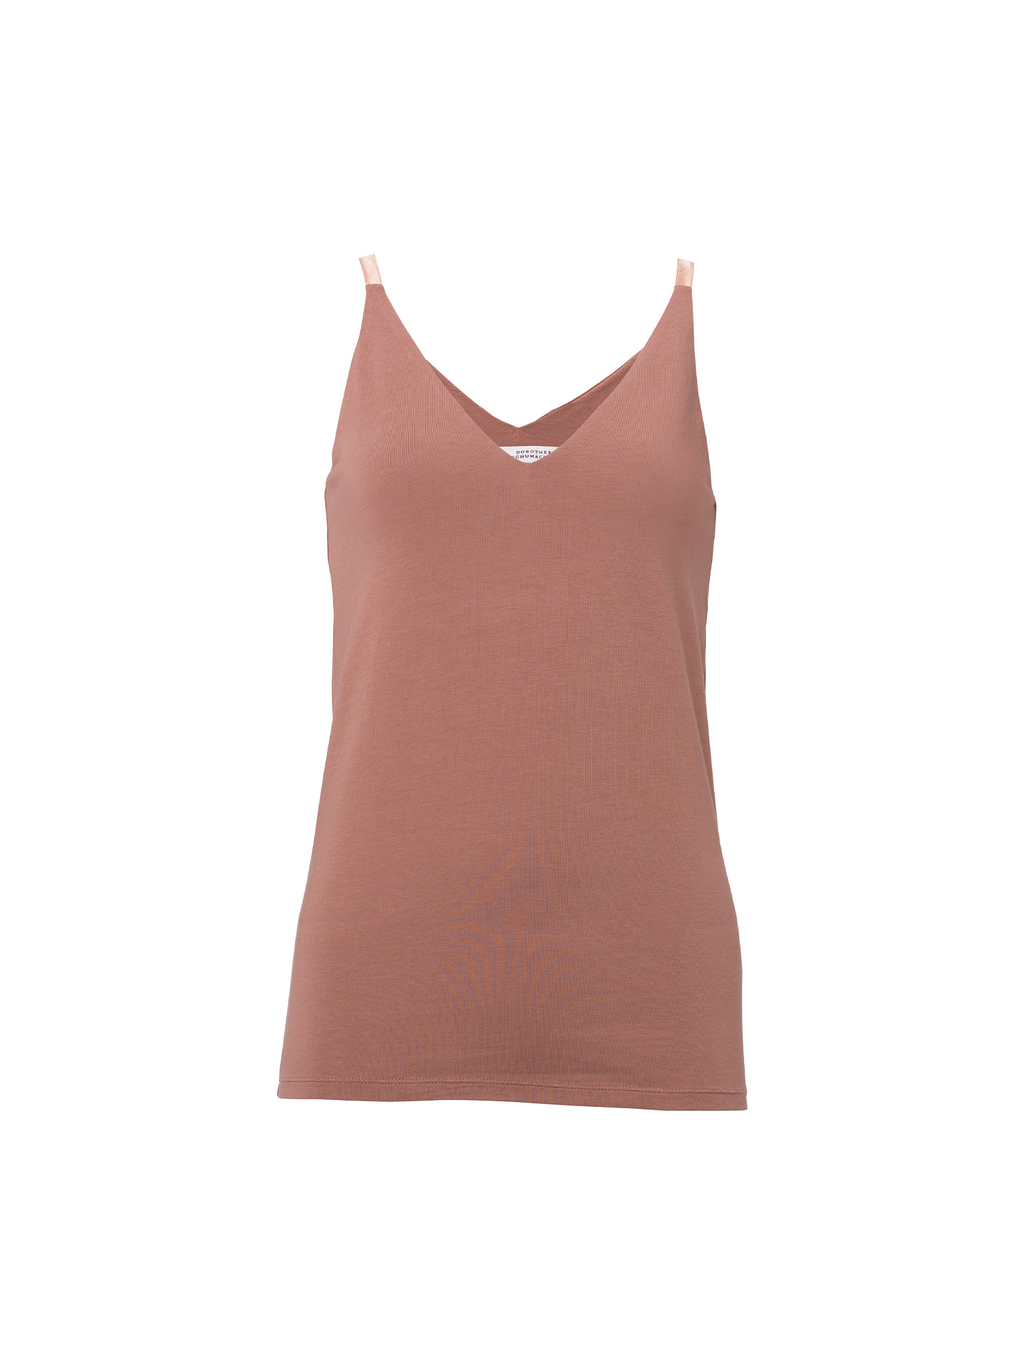 Dorothee Schumacher All Time Favourites Tank Top